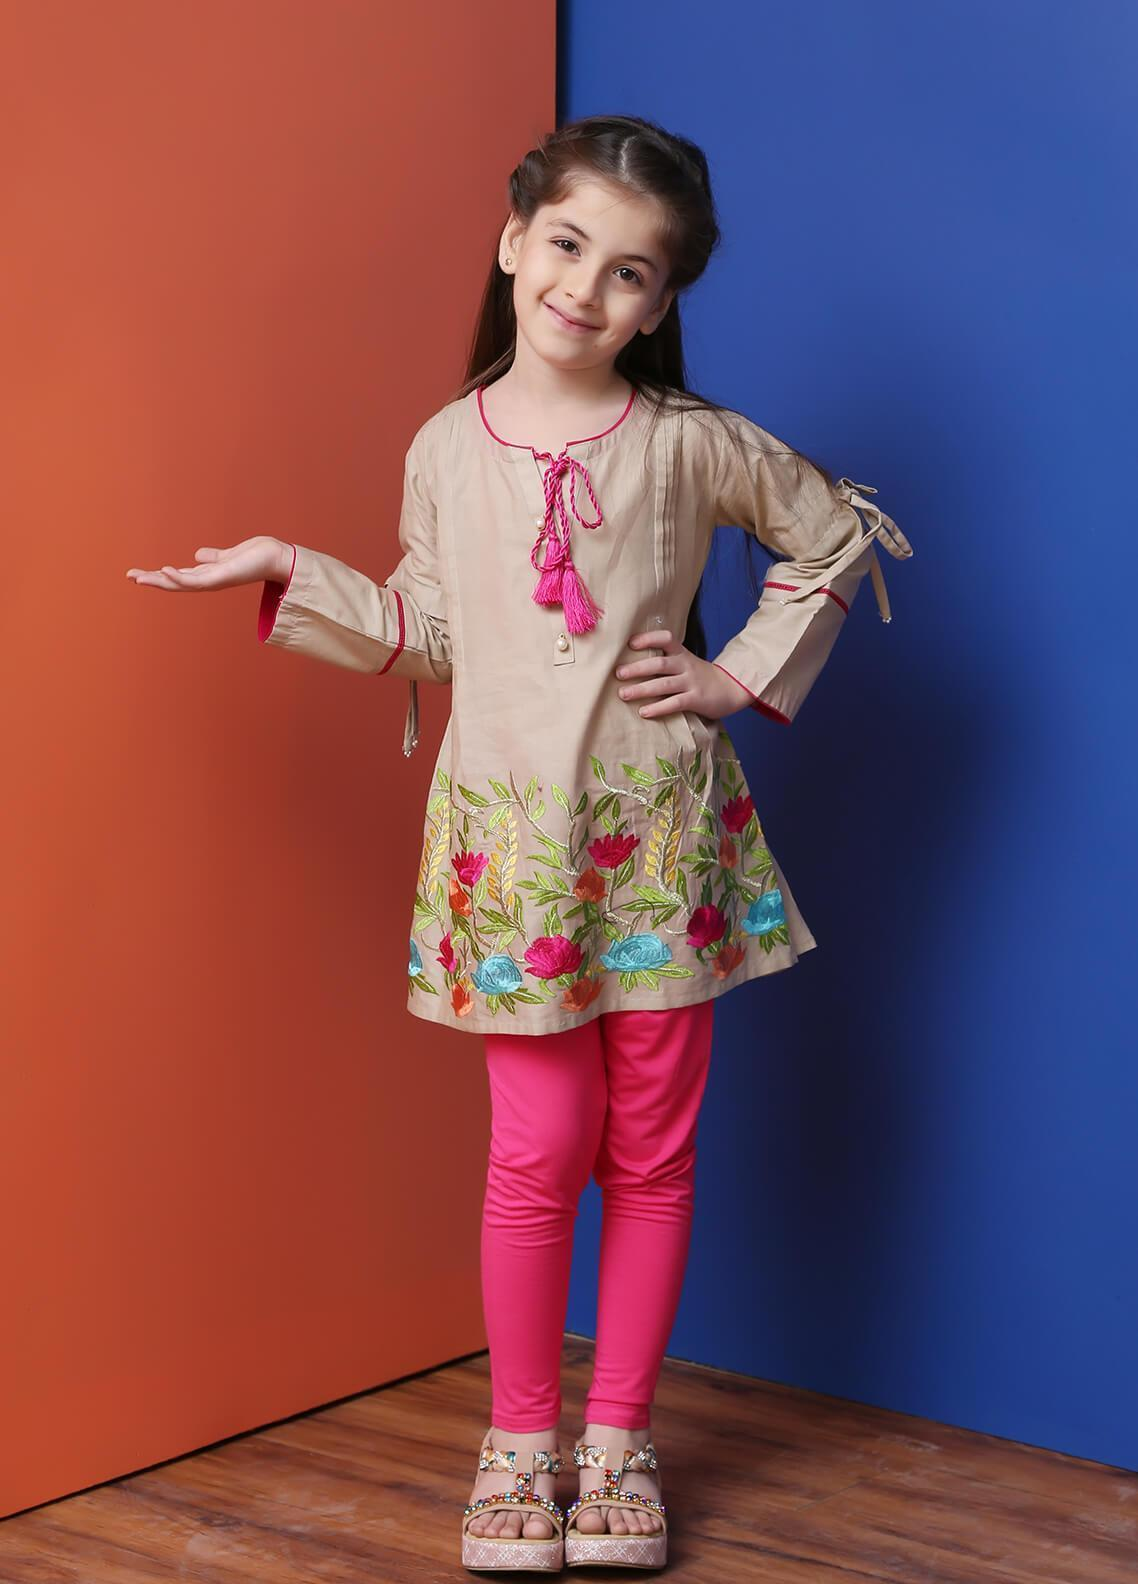 Ochre Cotton Formal Kurtis for Girls - OWT 264 Beige